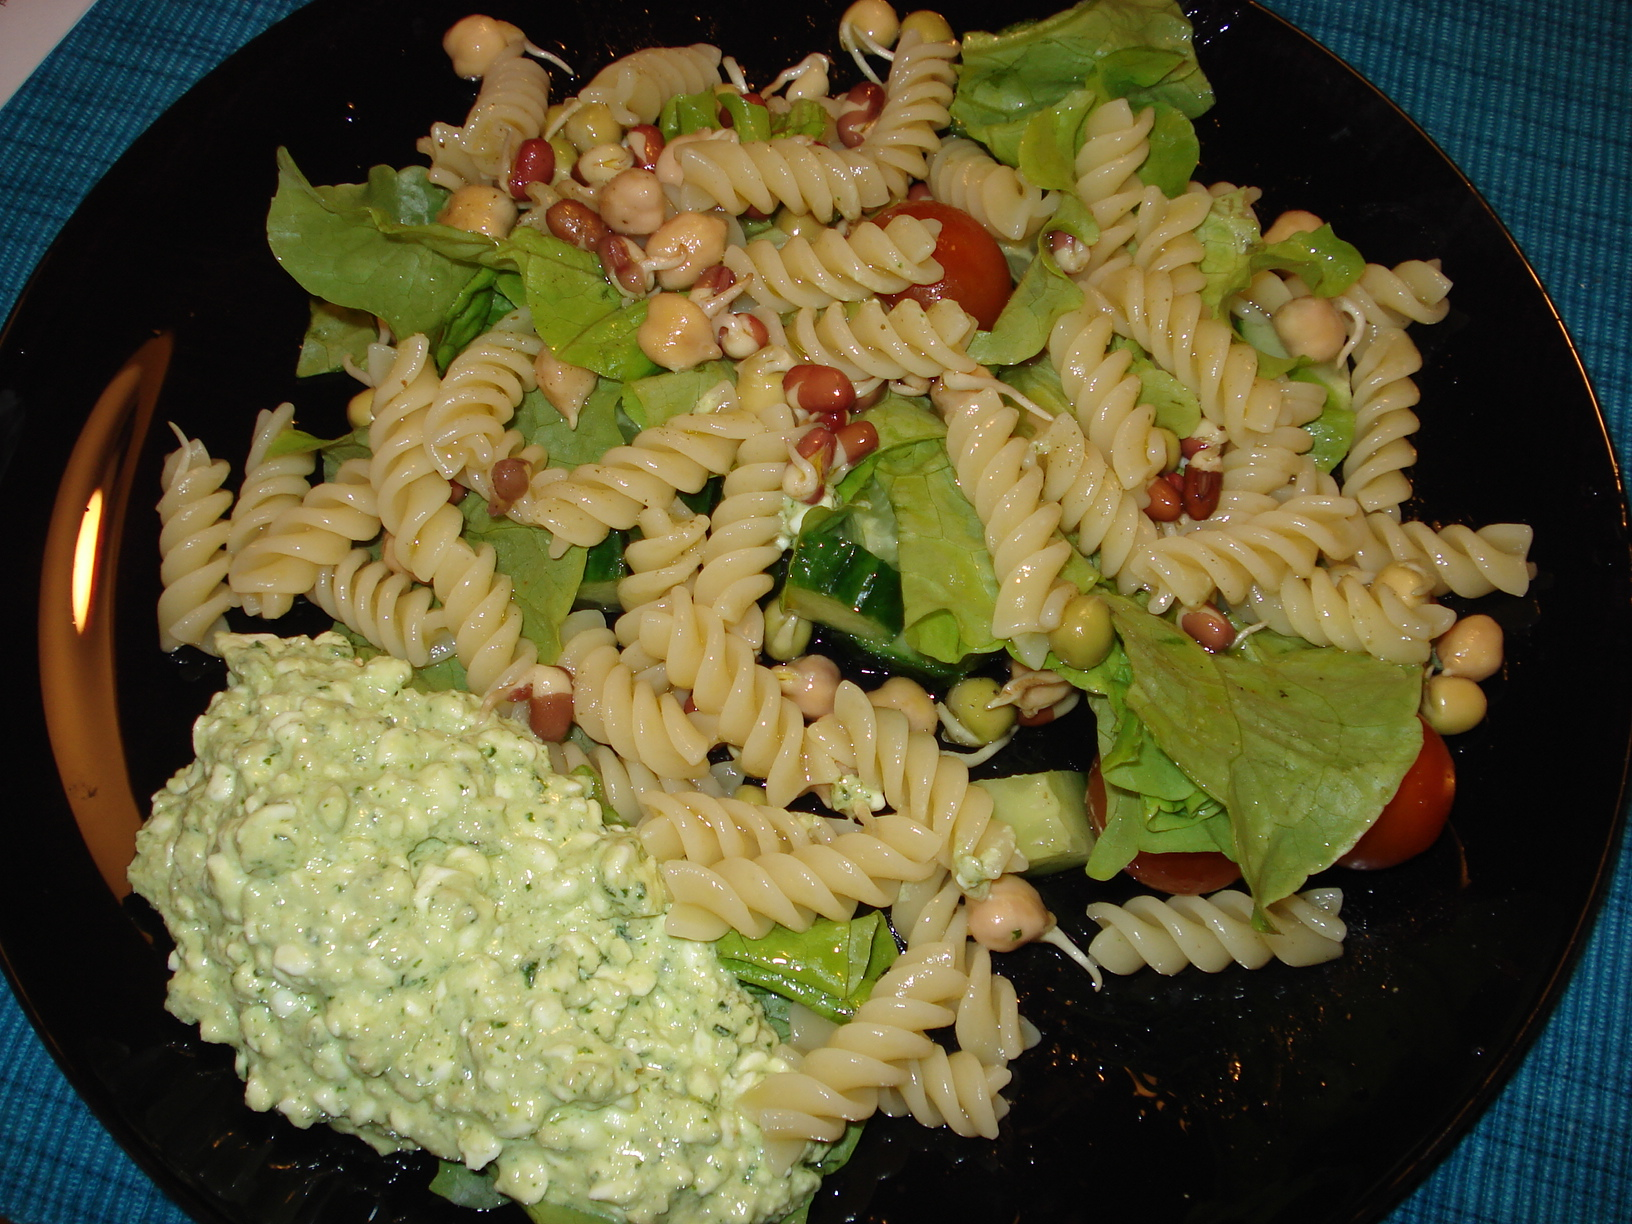 Pasta salad with fresh sprouts and pesto cottage cheese